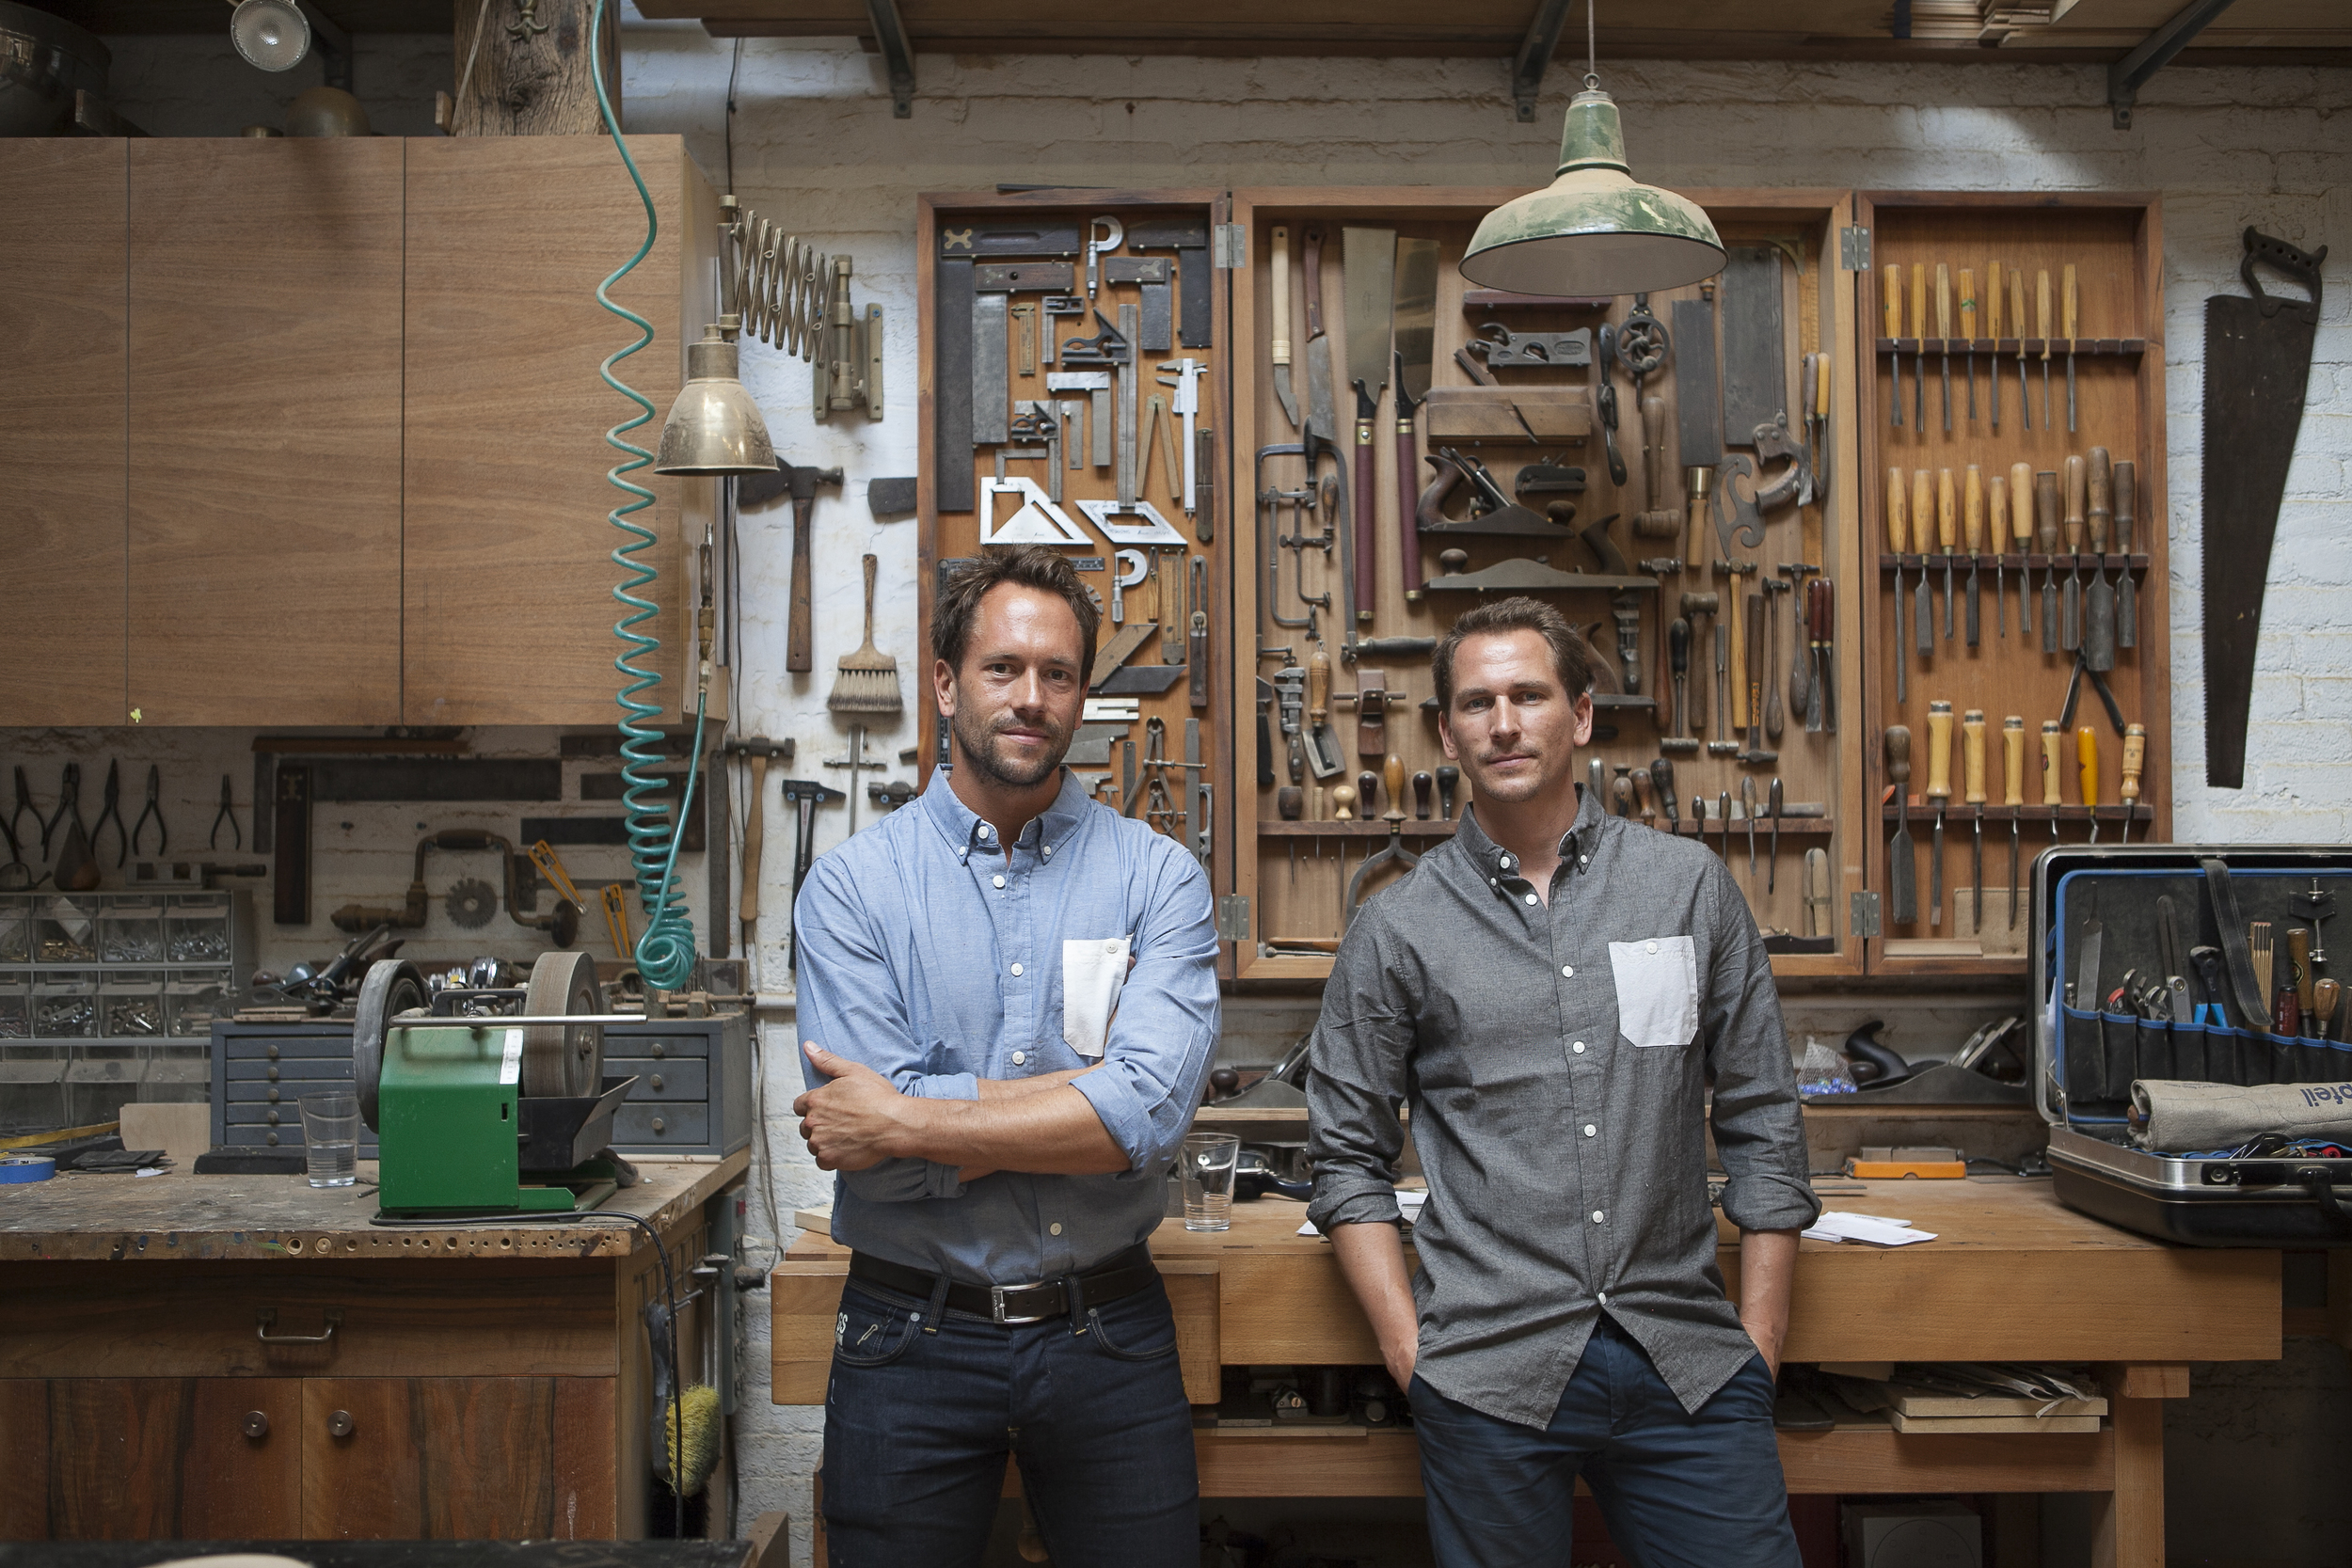 Dossier Lifestyle Photos: Madera Trade Founders